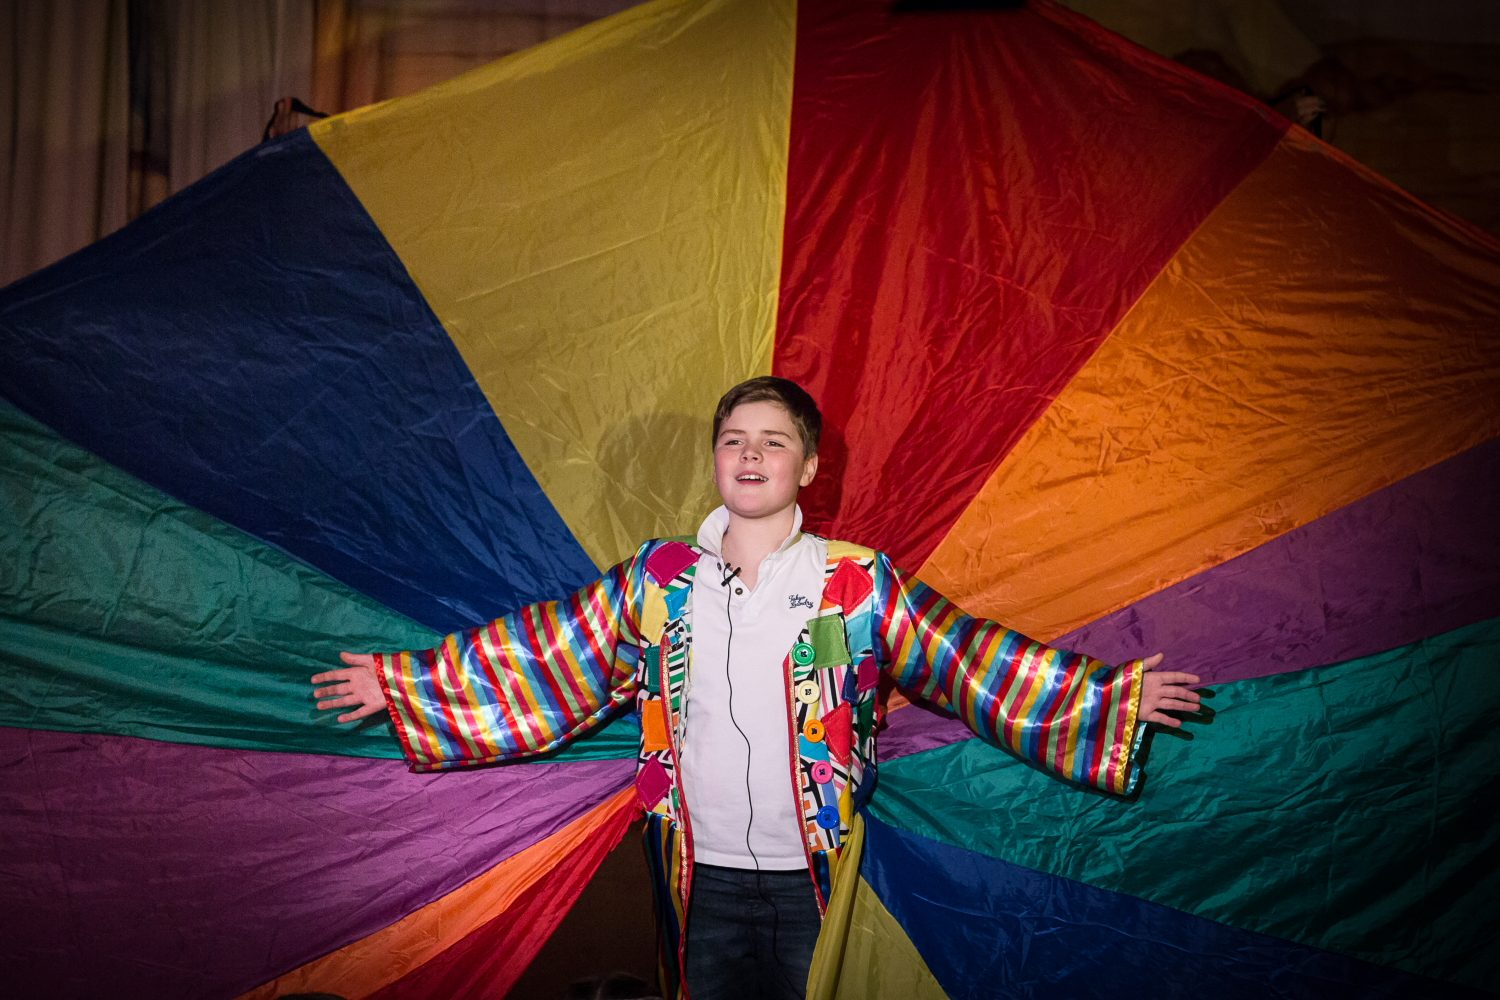 Pupil playing the part of Joseph from the musical Joseph and the amazing technicolor dreamcoat. The coat of many colours is on full display behind the pupil.